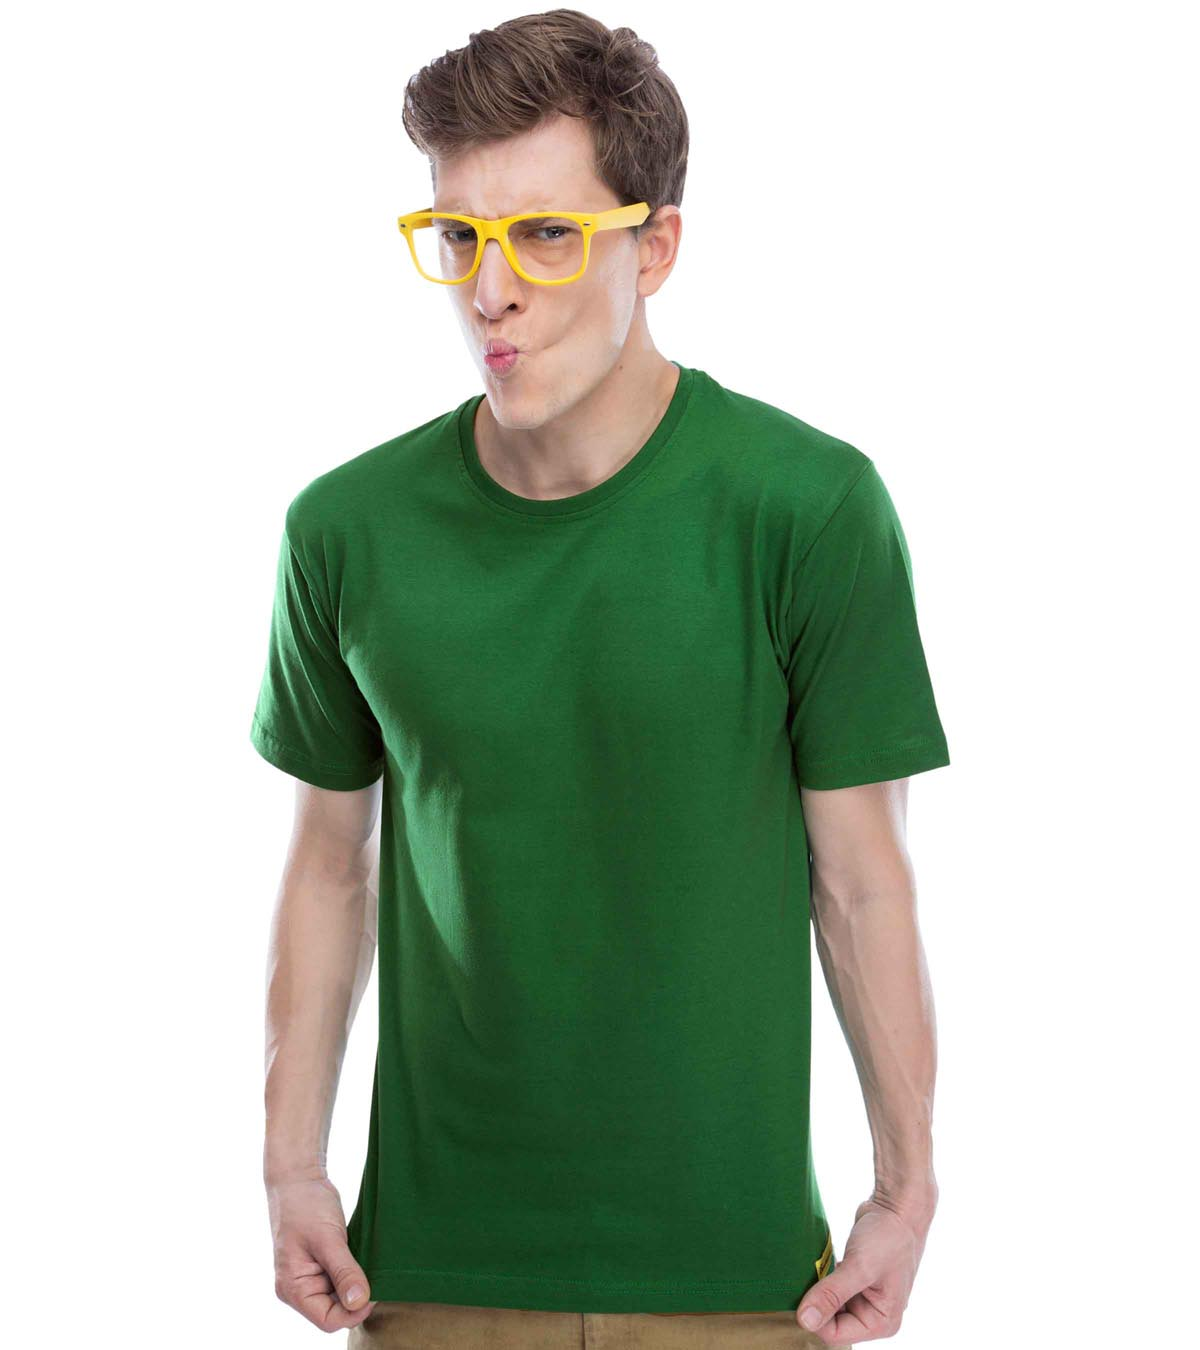 Green Plain Guys Tee